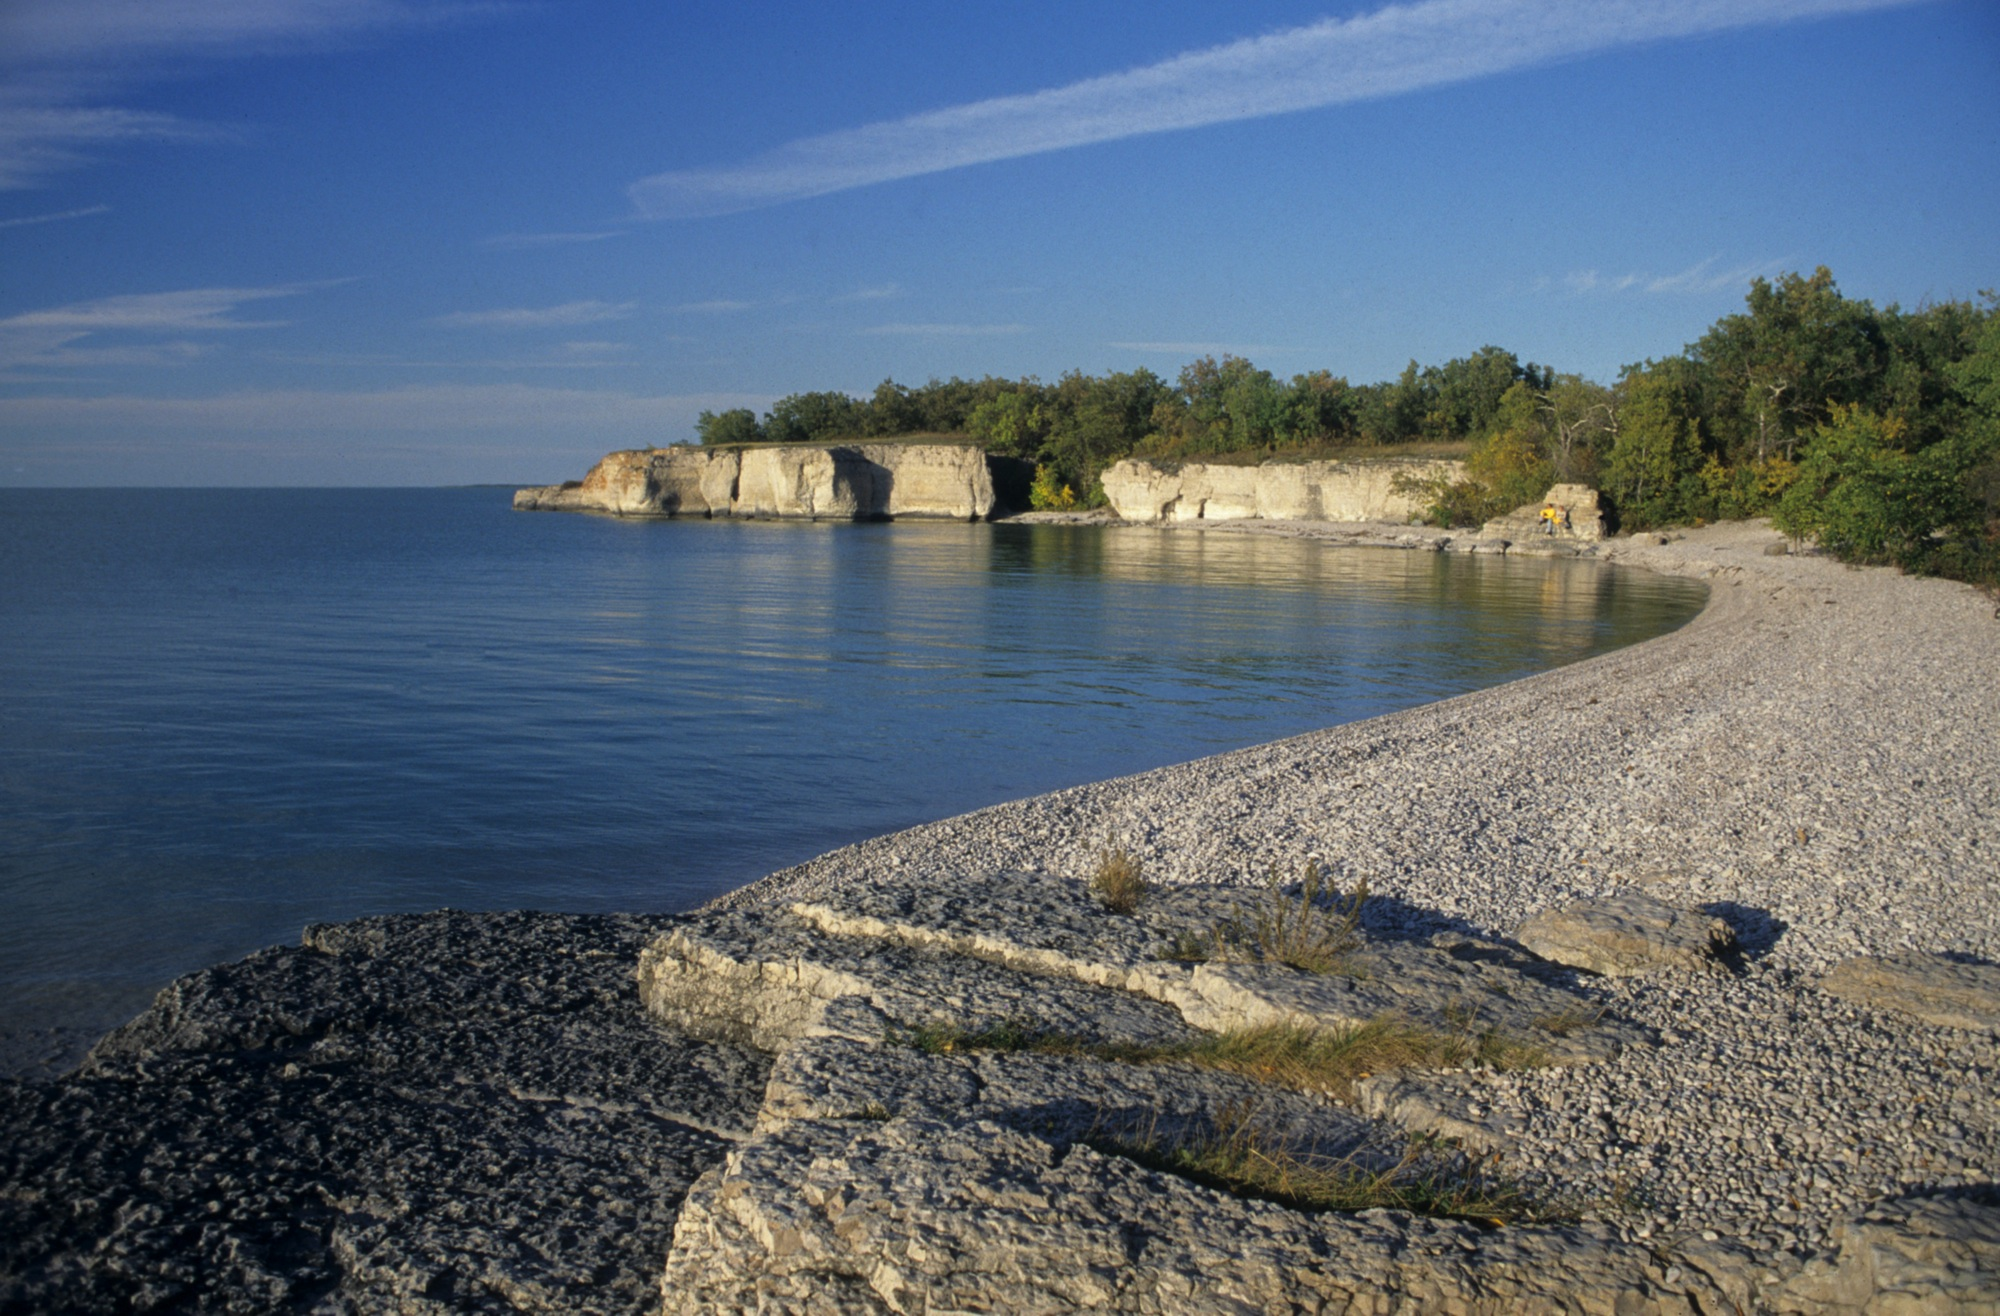 Beaches in Manitoba